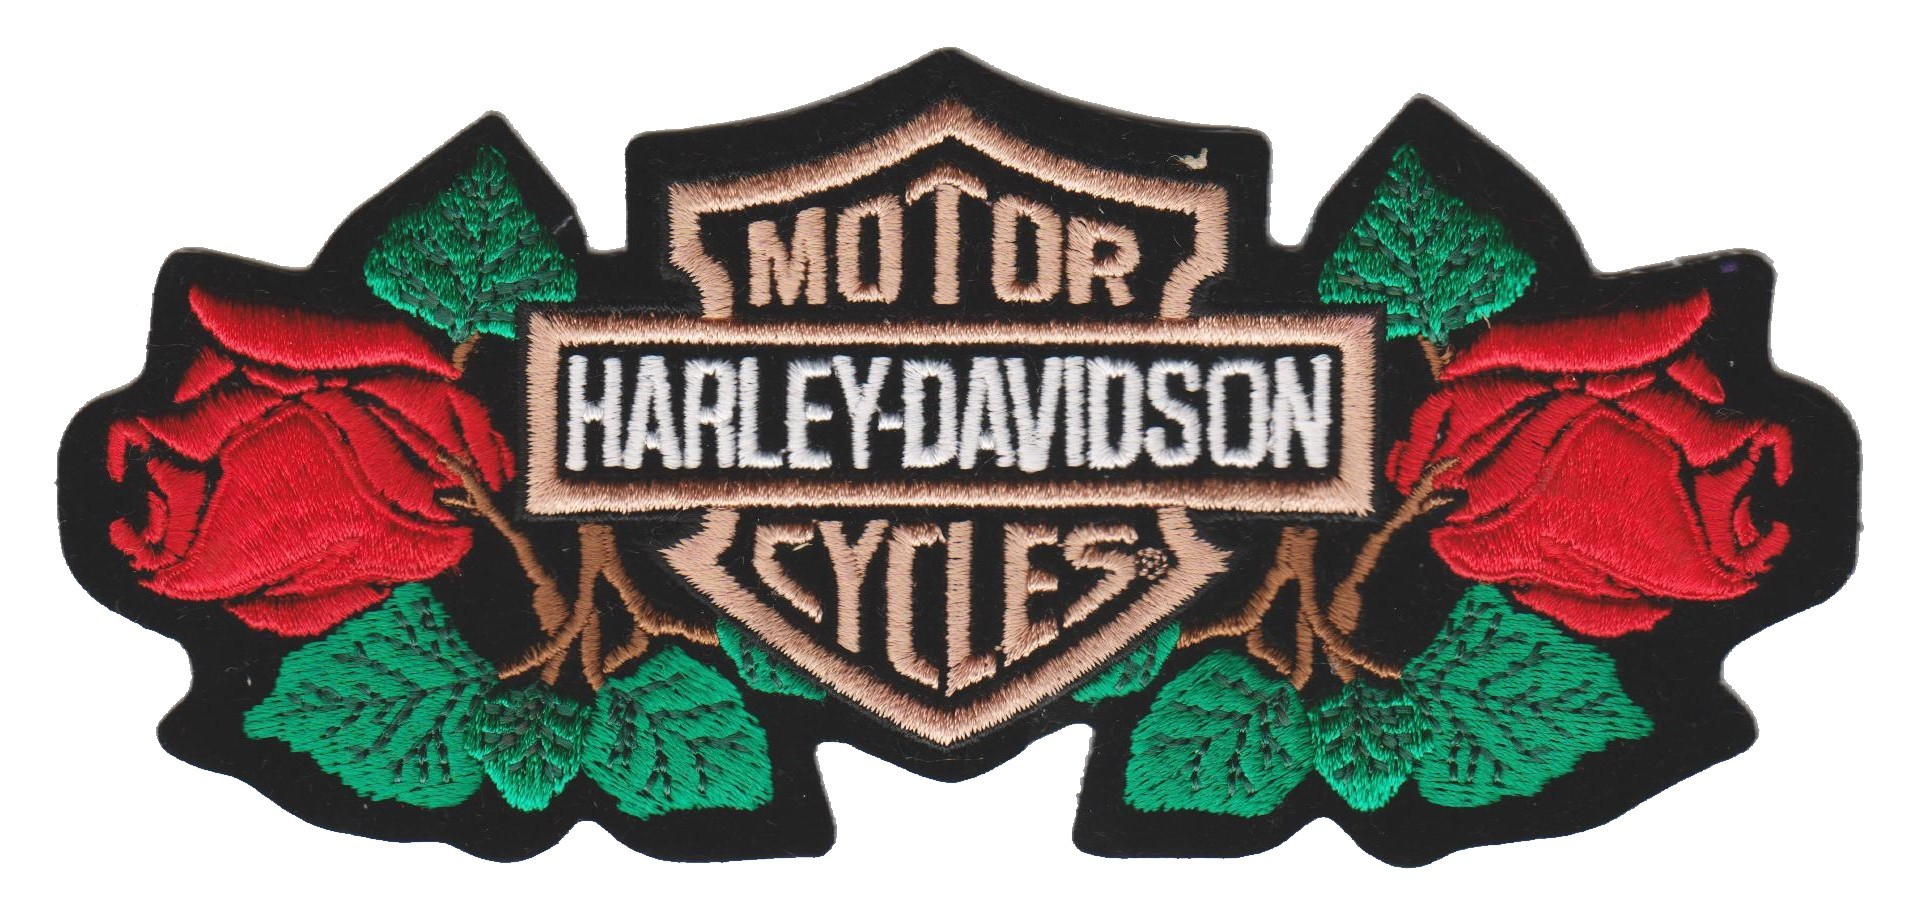 Harley Davidson 174 Roses Harley 174 Patch 2 3 4 Quot X 6 Quot Free